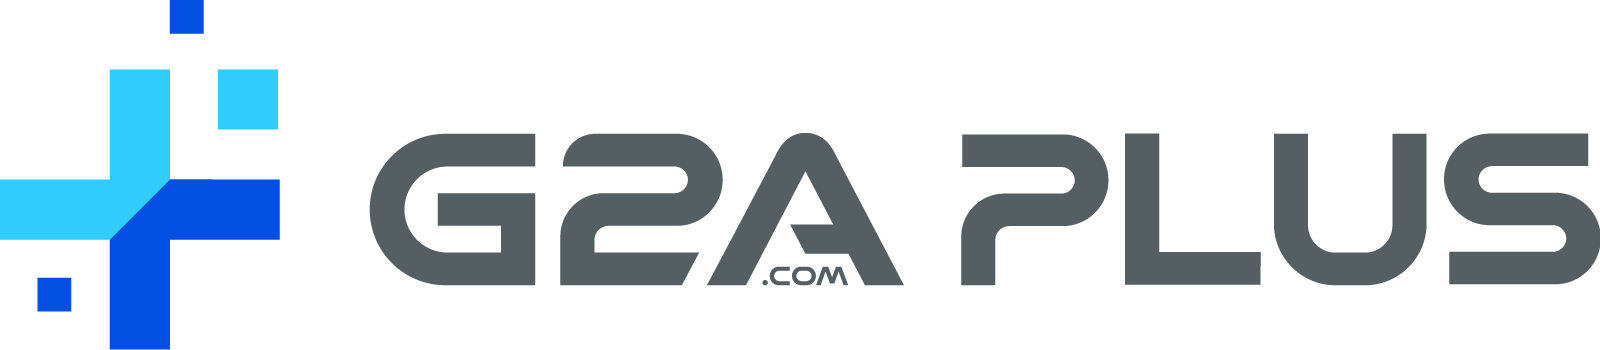 50540da76f G2A  🚀💎-unlock your Deal Hunting Boost with G2A PLUS